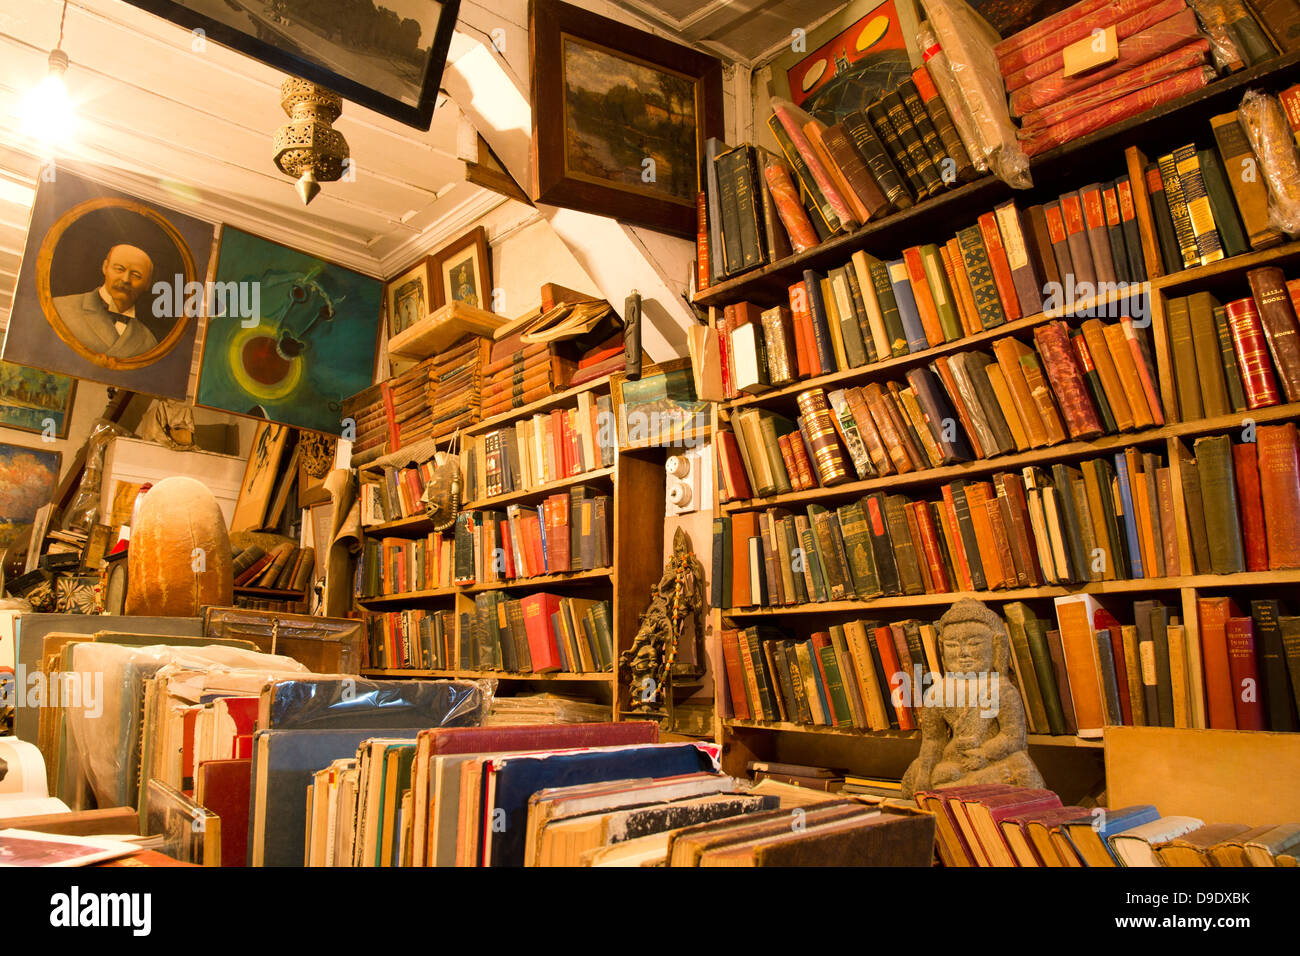 Interiors of a library, Shimla, Himachal Pradesh, India - Stock Image